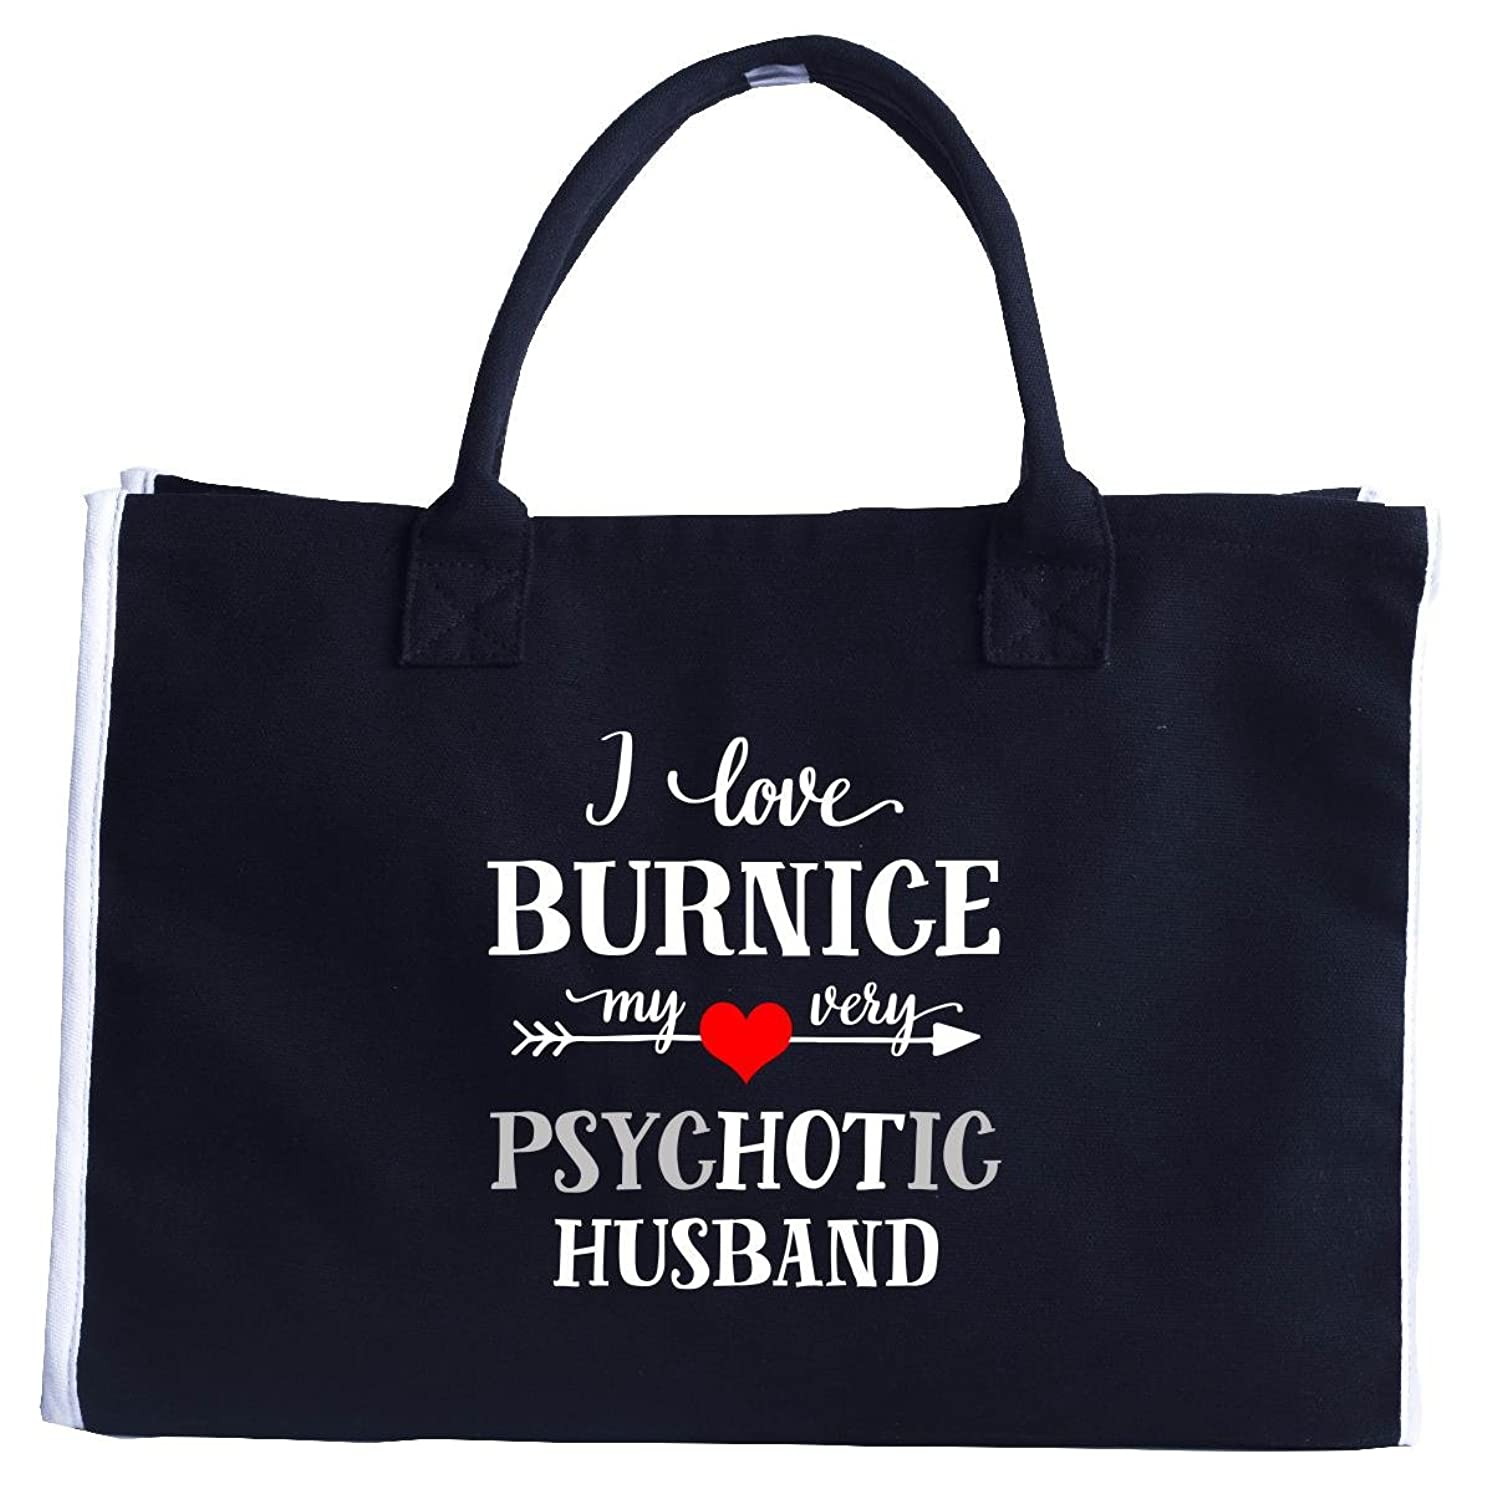 I Love Burnice My Very Psychotic Husband. Gift For Her - Fashion Tote Bag